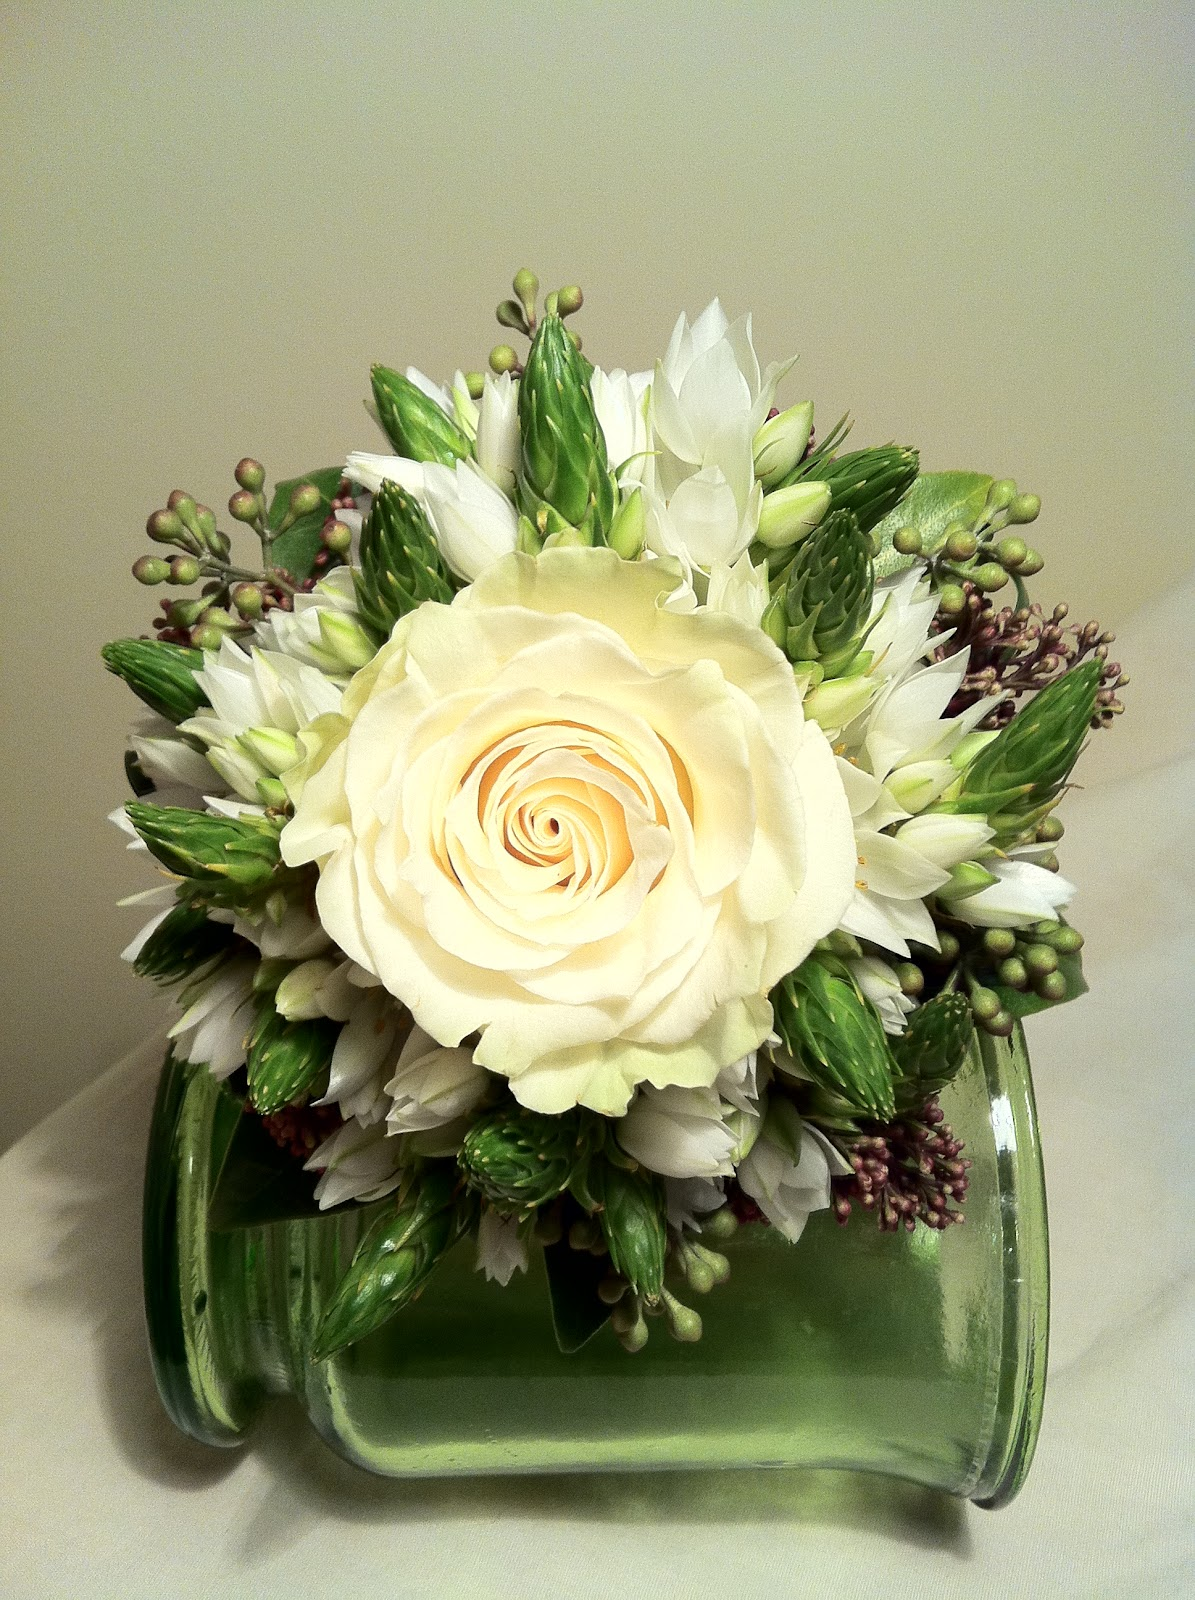 Mini Wedding Bouquet With One White Rose And Multipruposed